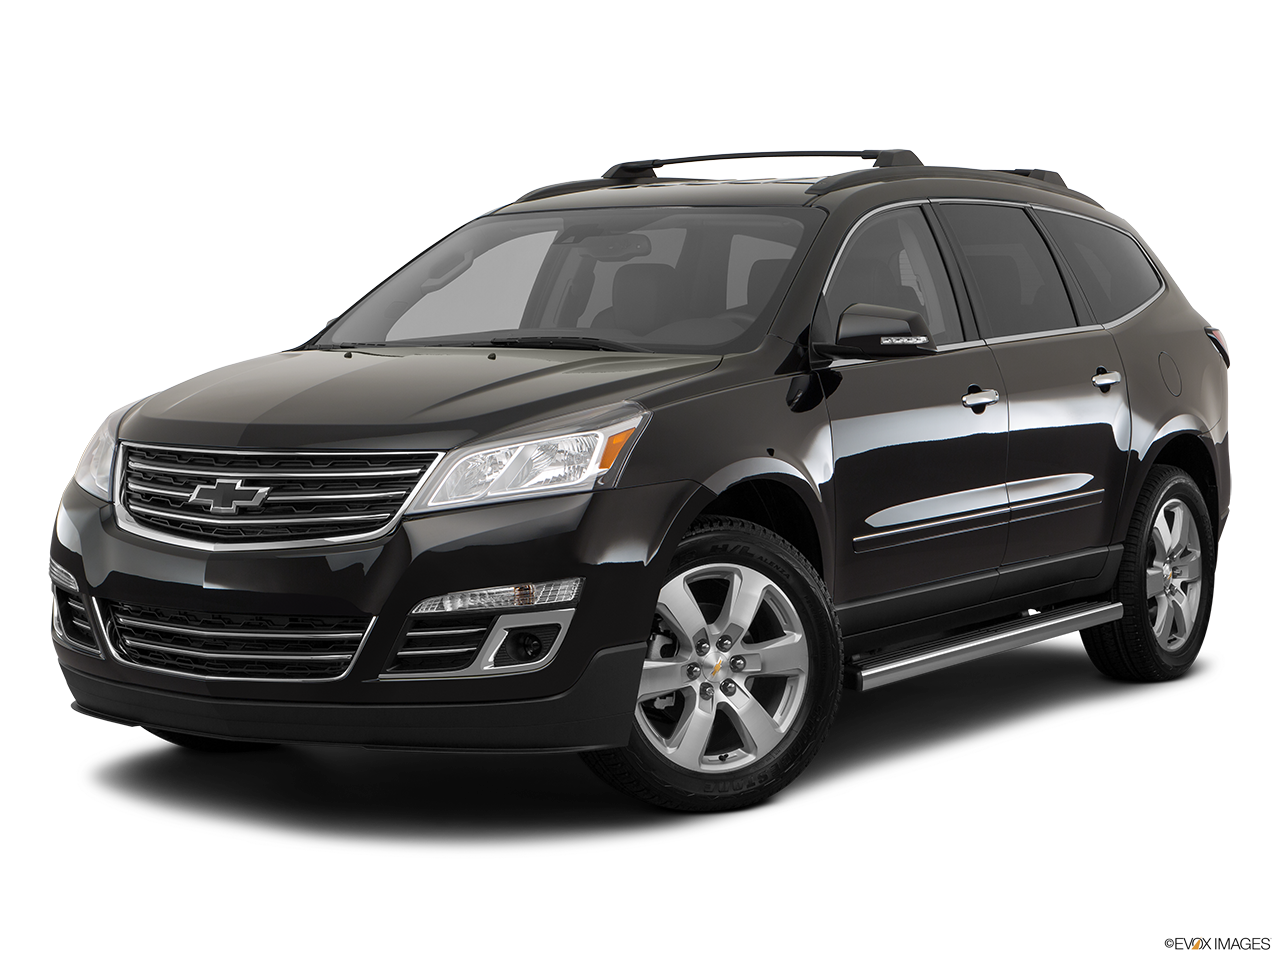 test drive a 2017 chevrolet traverse at champion chevrolet in reno. Cars Review. Best American Auto & Cars Review